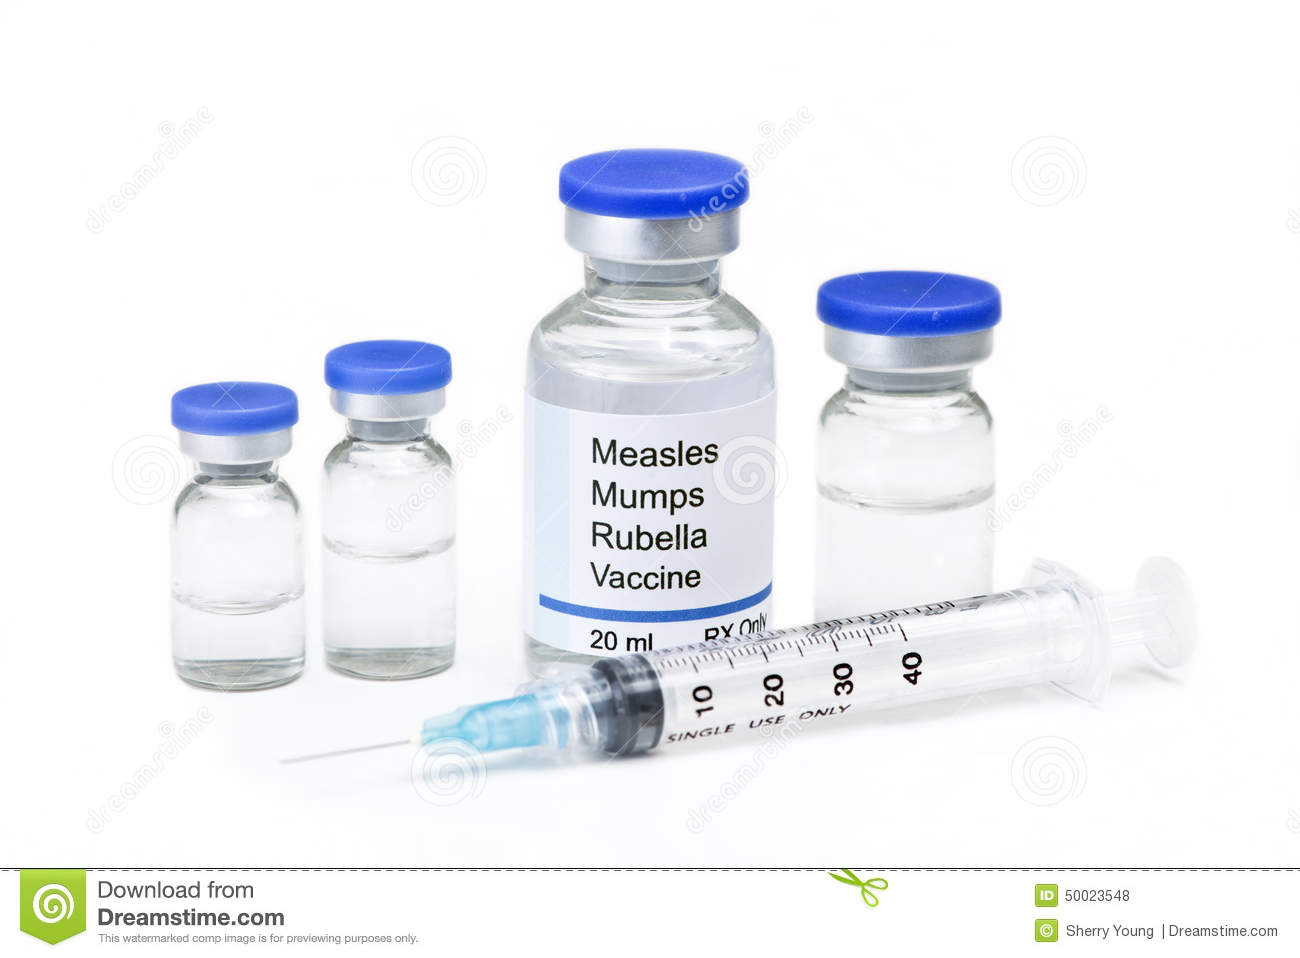 Measles, mumps, rubella, virus vaccine vials and syringe on white ...